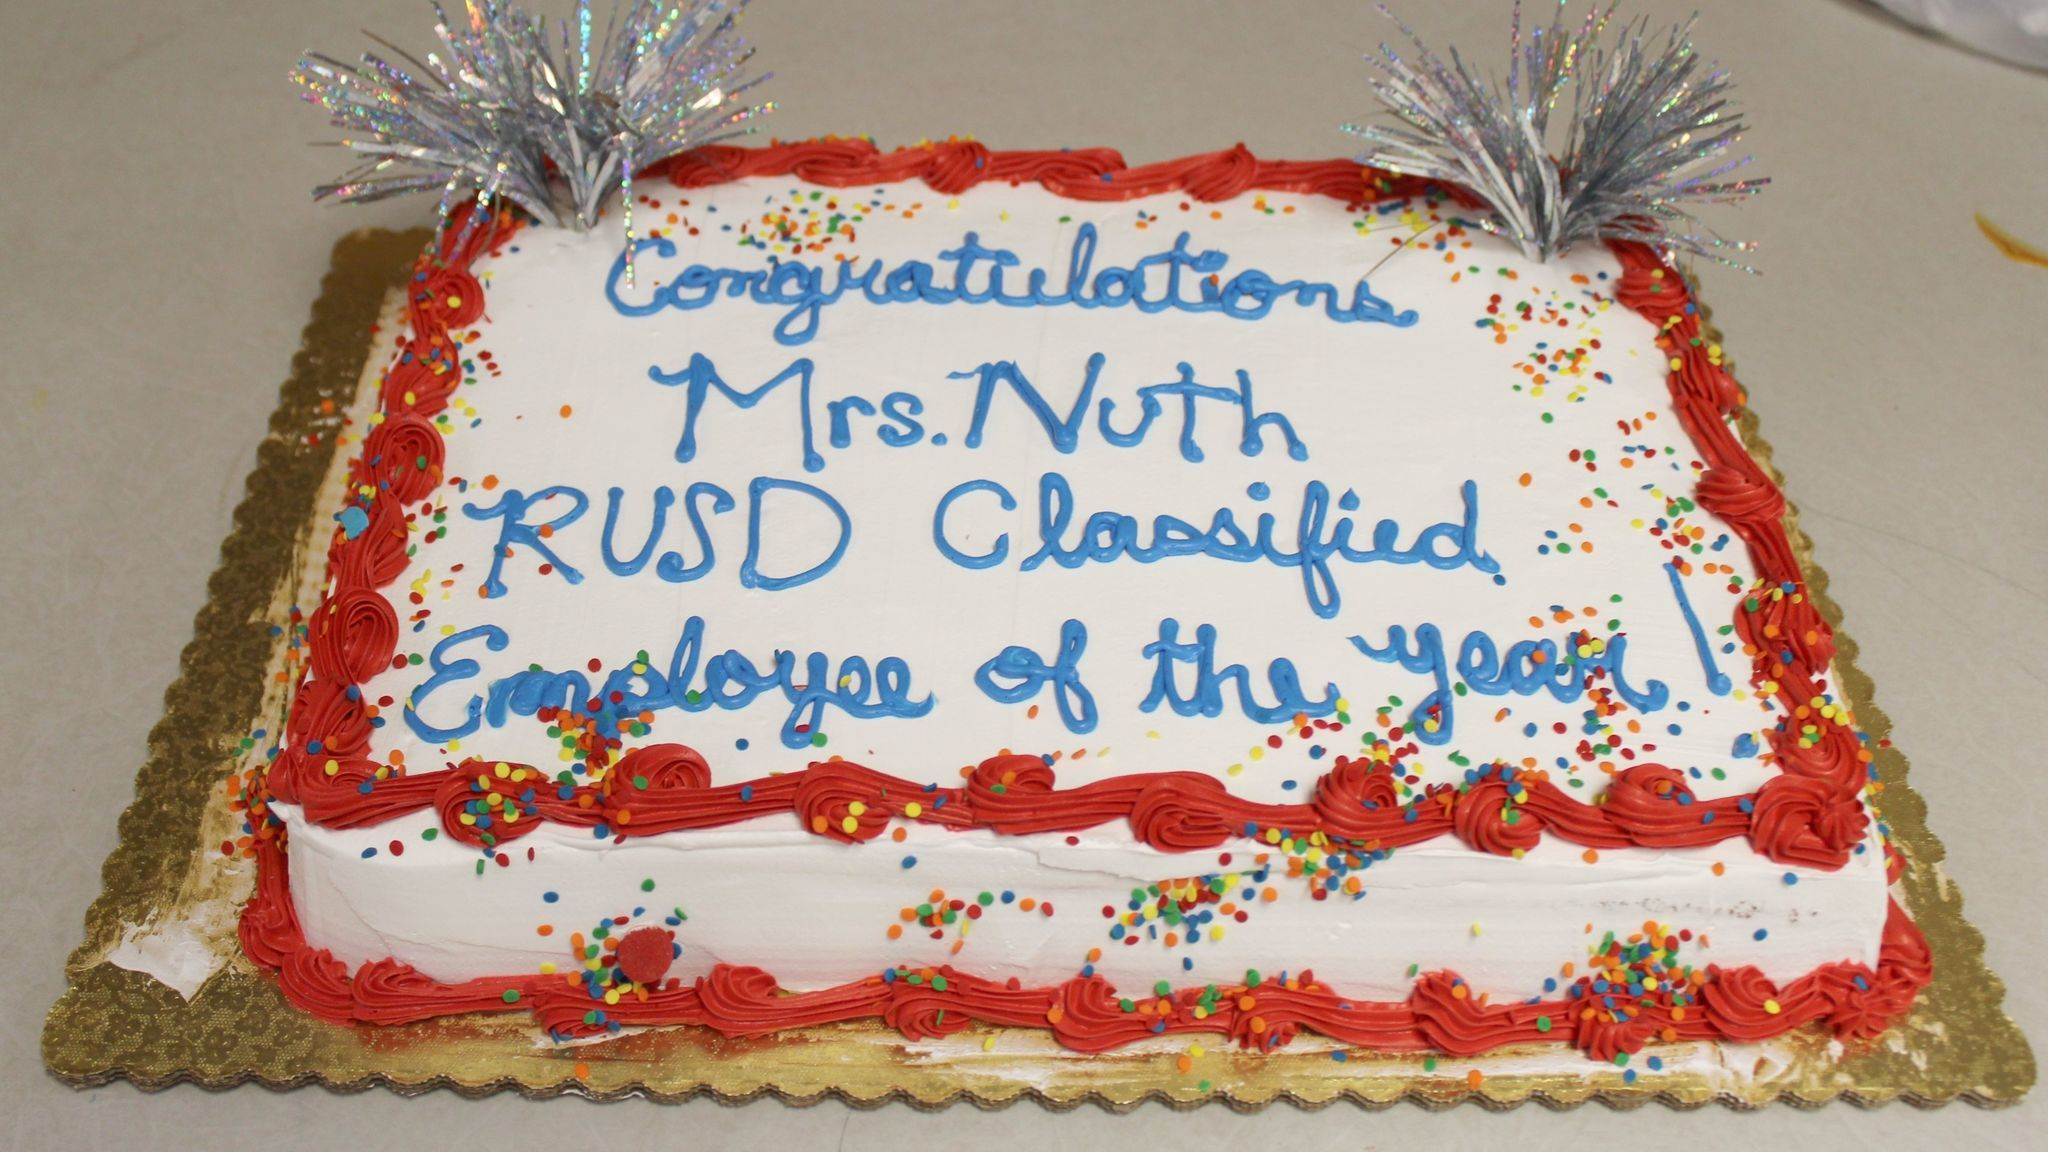 Students and staff share a piece of cake celebrating Nuth.